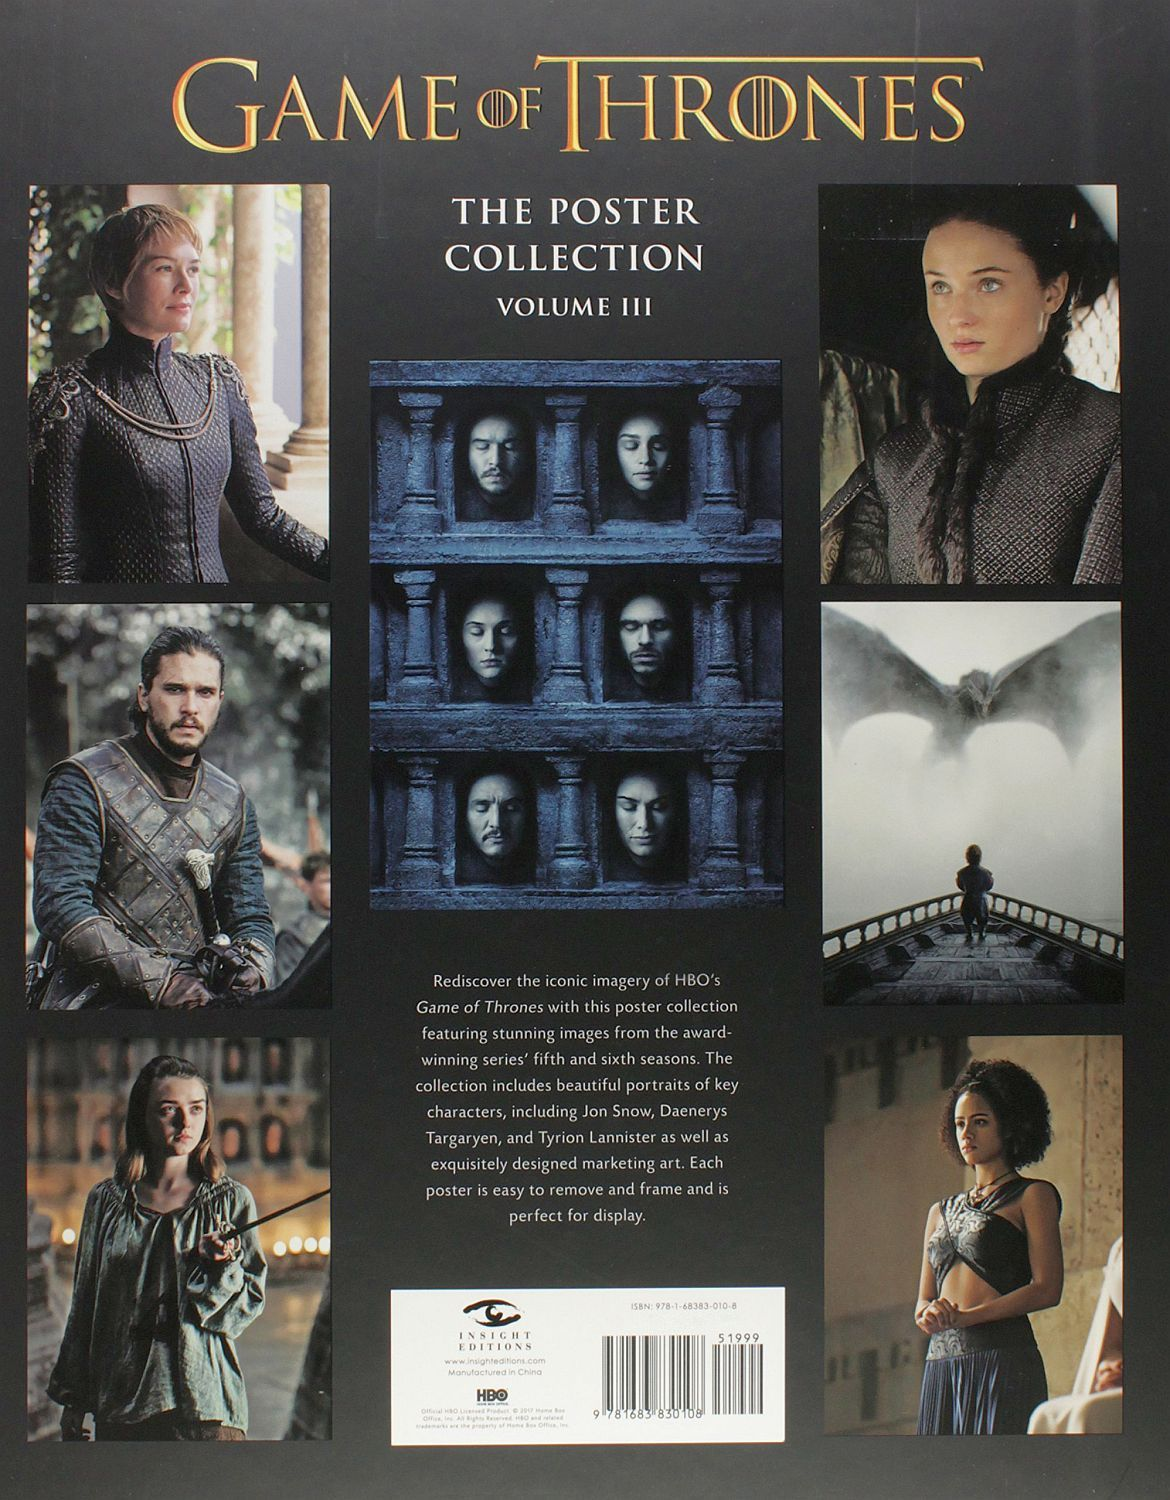 Game of Thrones: The Poster Collection, Volume III - 7